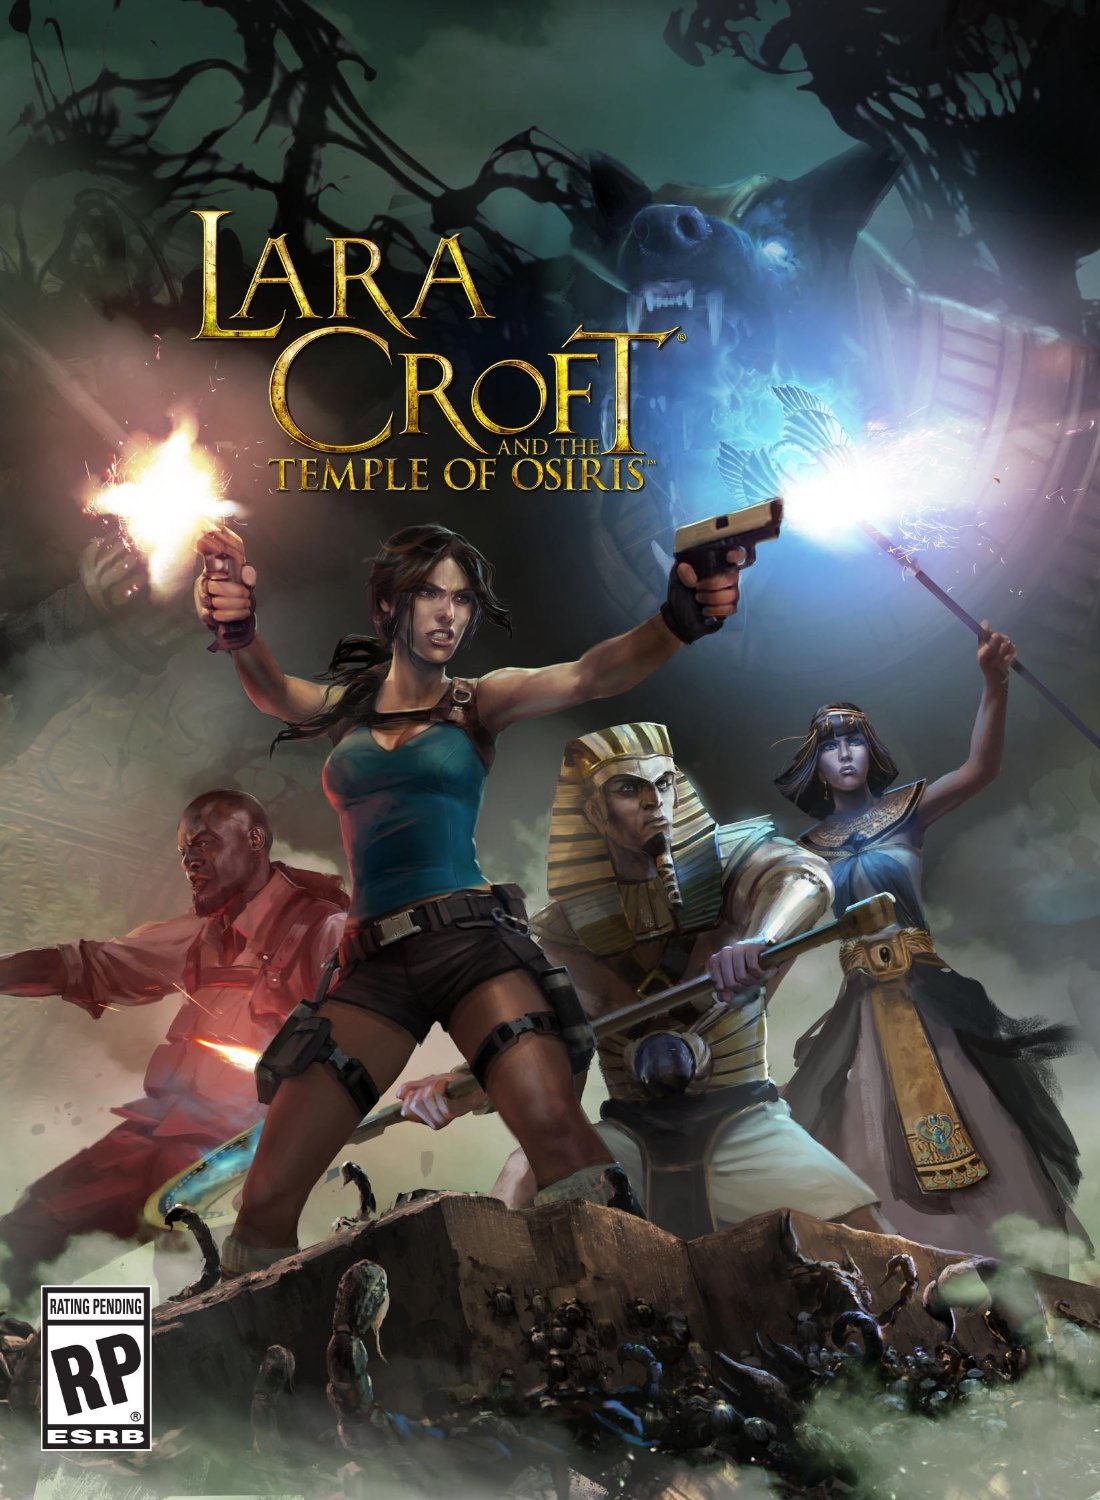 Poster Lara Croft and the Temple of Osiris (2014)